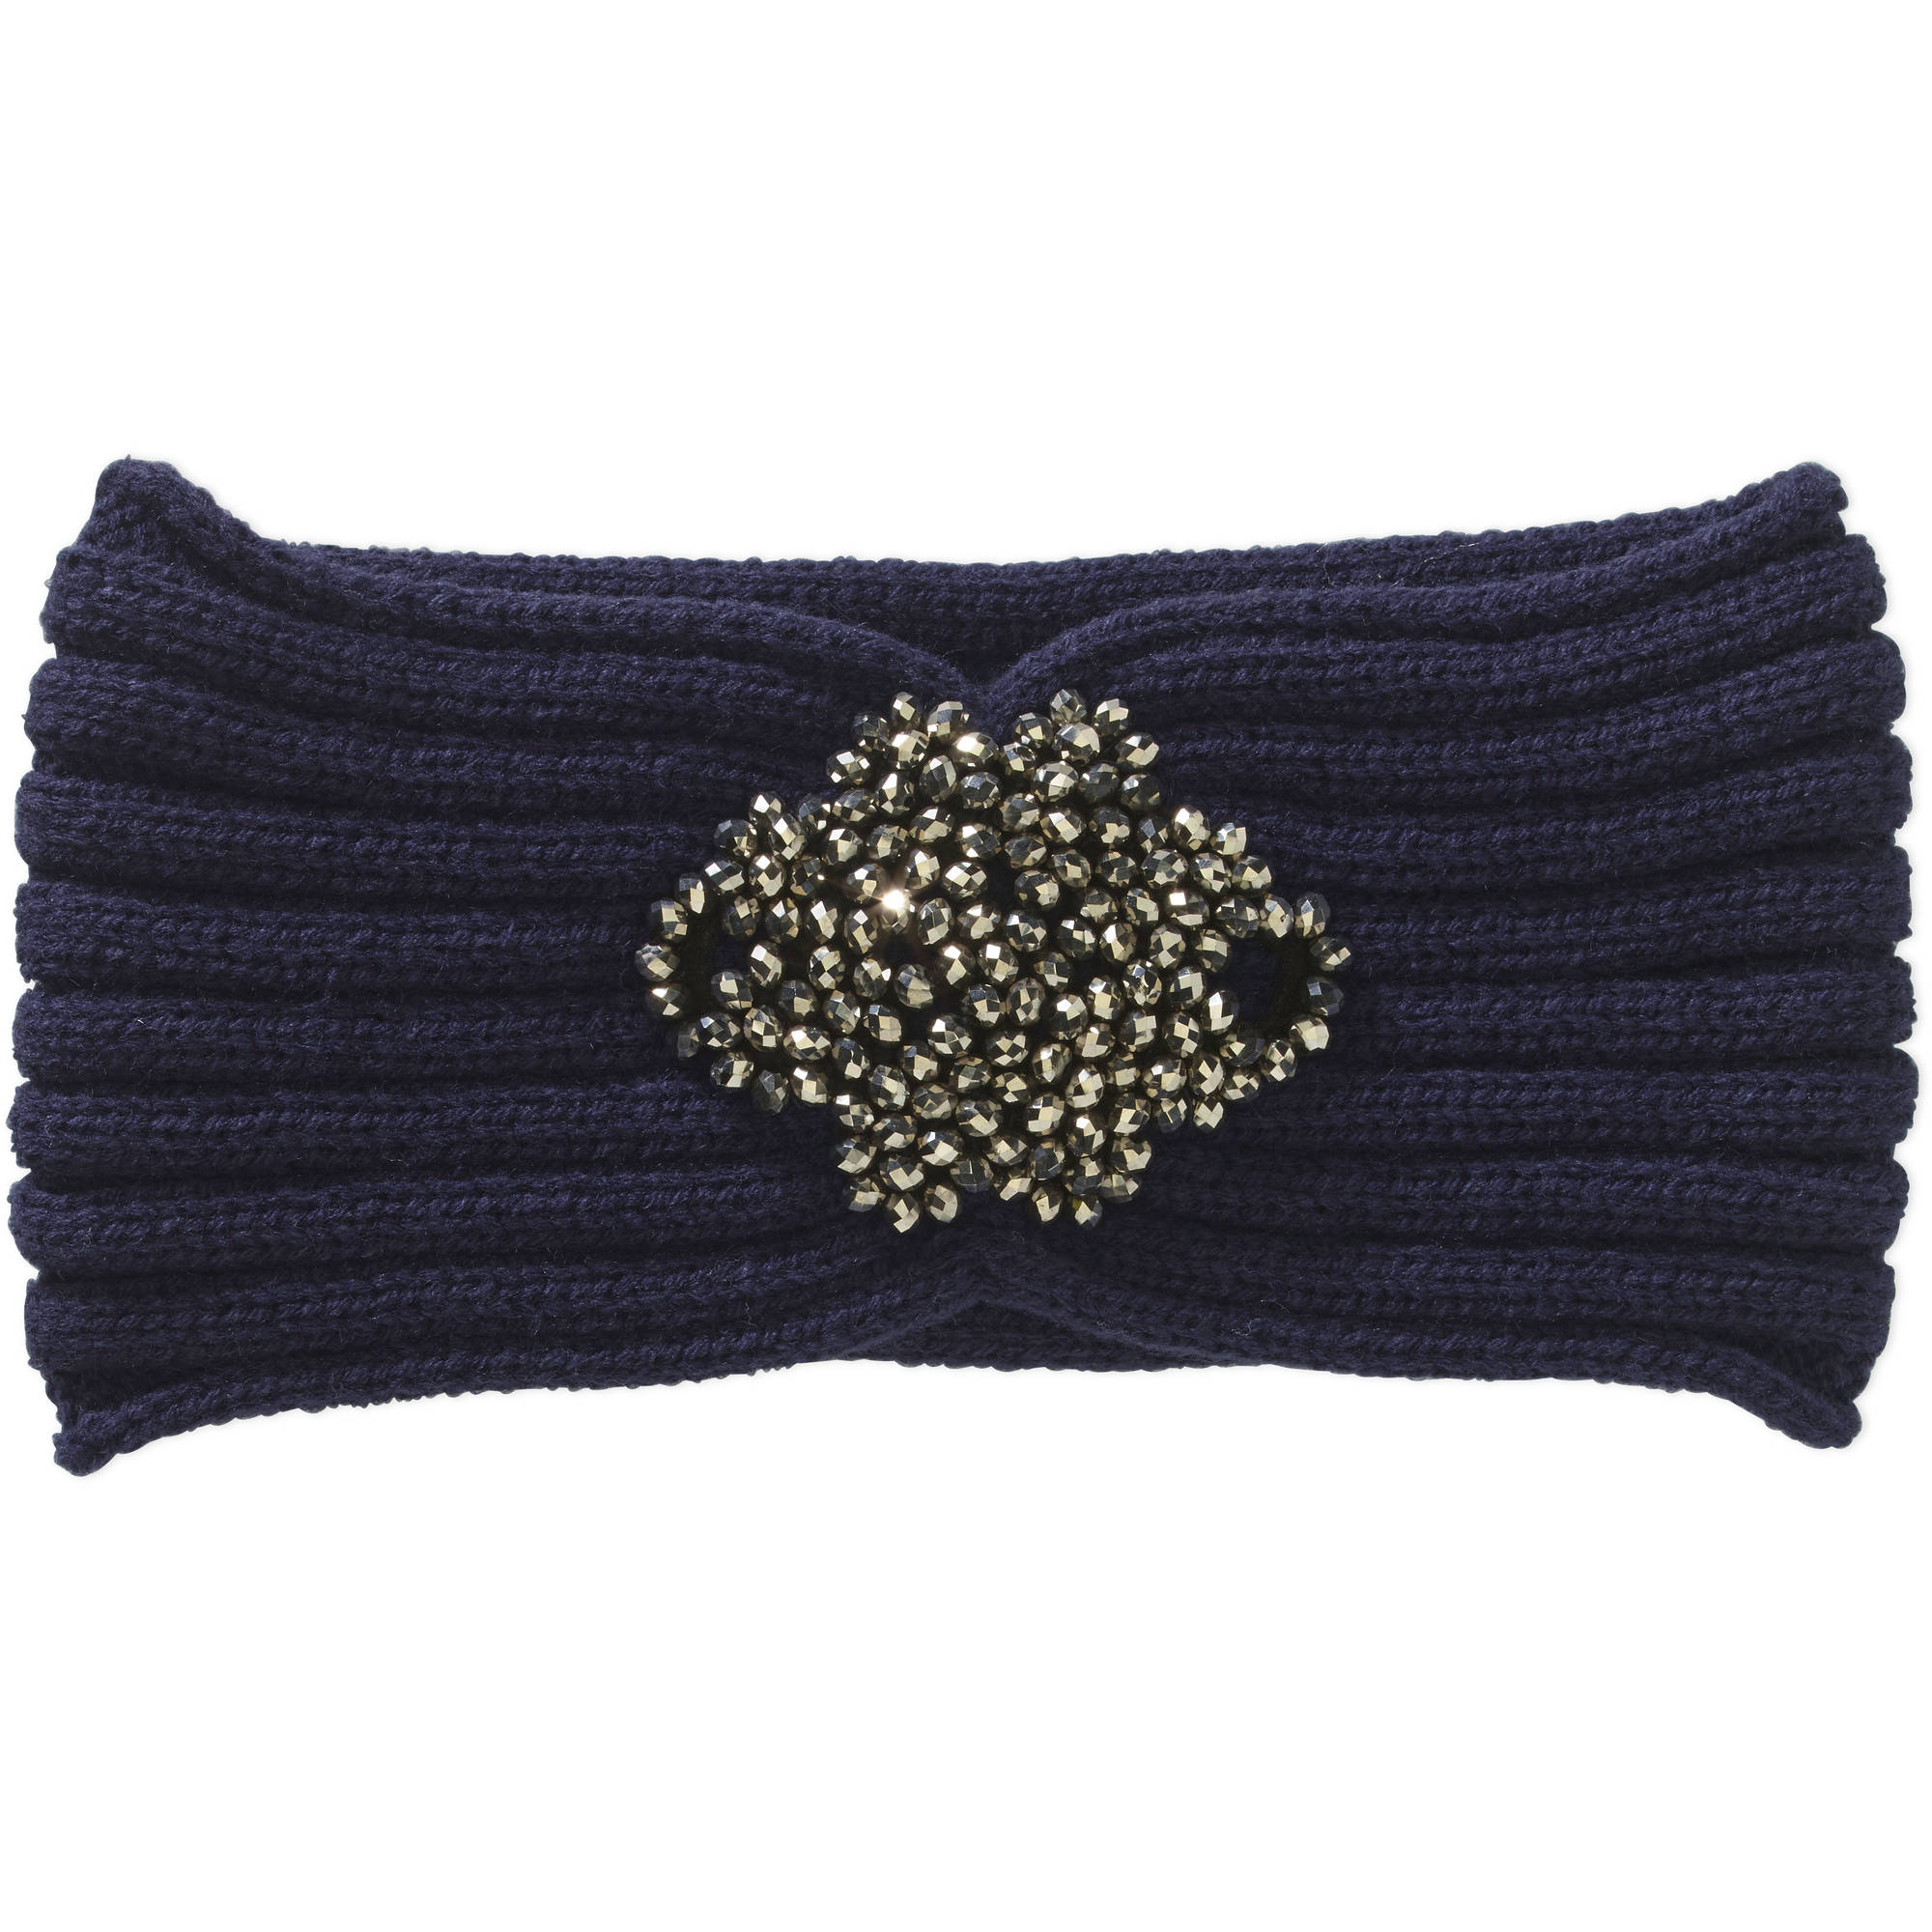 Faded Glory Women's Cold Weather Headband with Bling